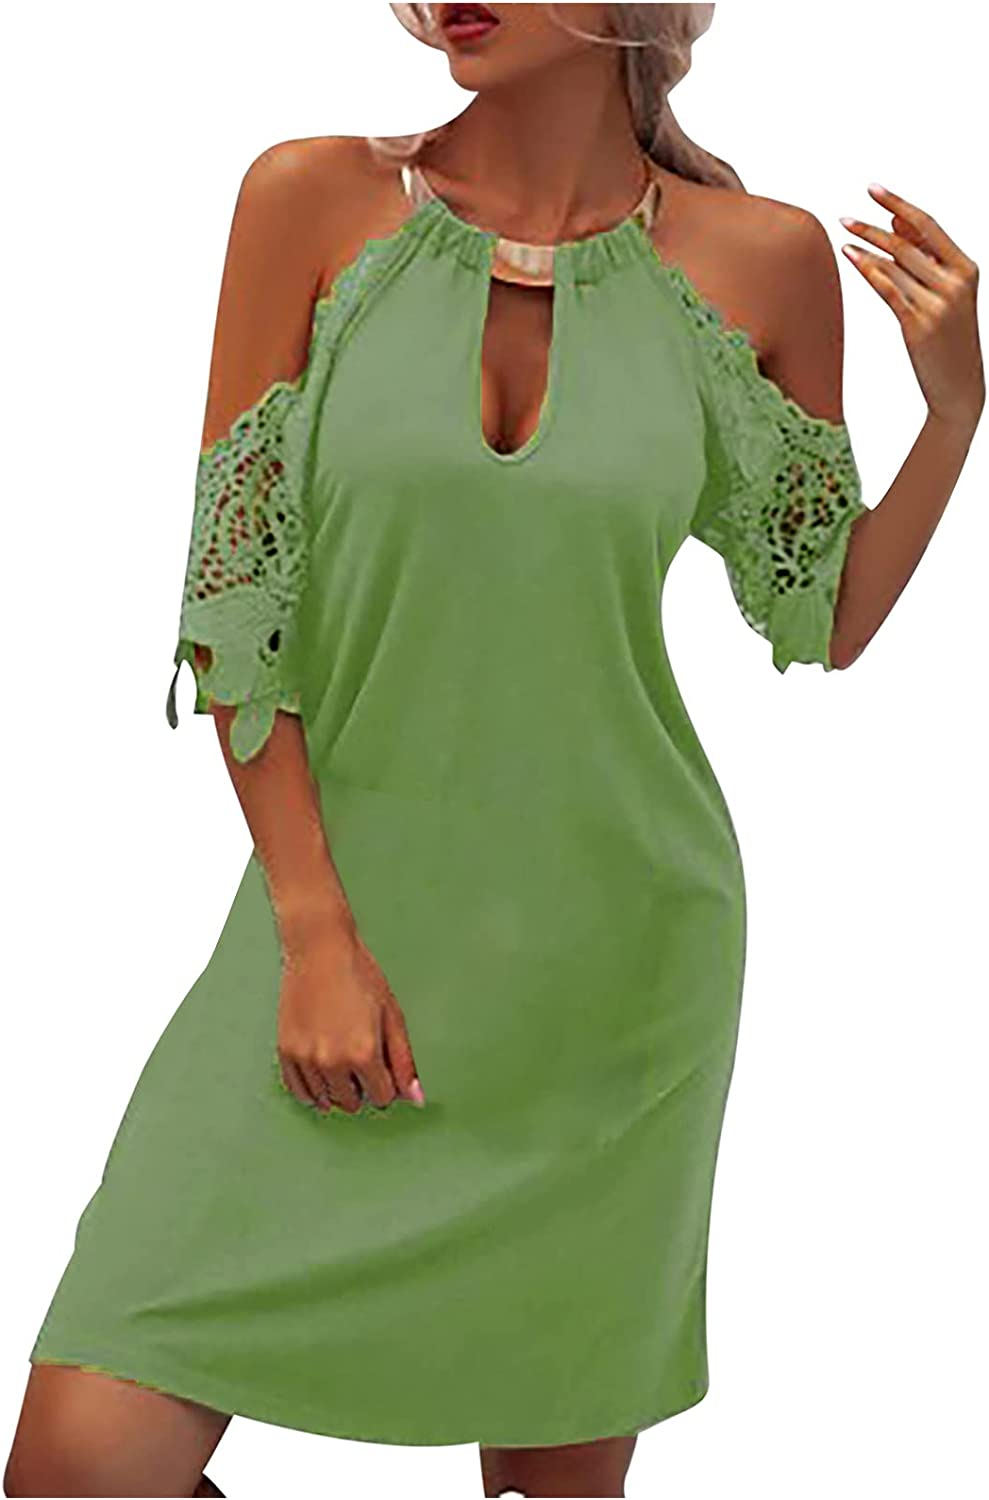 Dress for Women,Solid Color O-Neck Halter Lace Short Sleeve Summer Sexy Slim Comfy Mini Dress